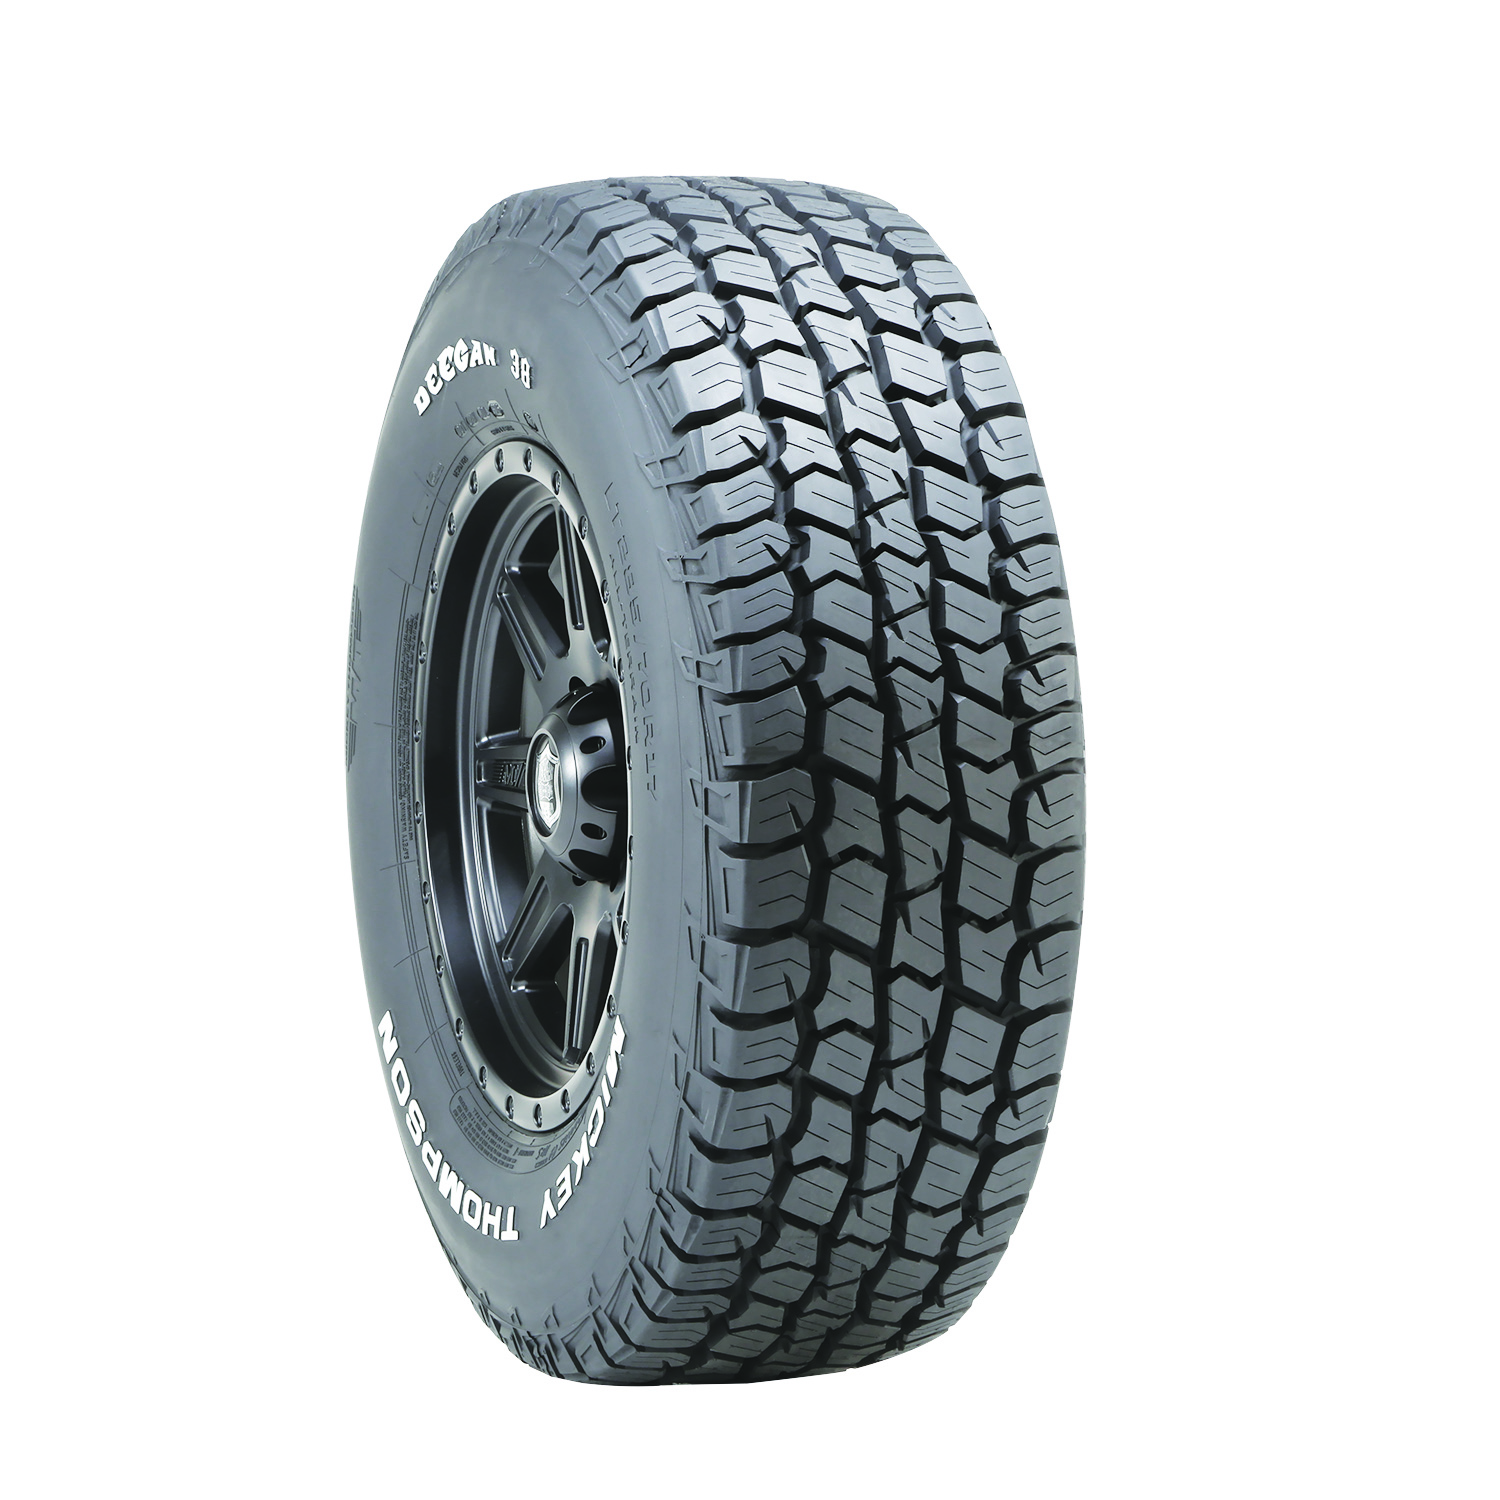 Mickey Thompson Set To Release New Deegan 38 All-Terrain Tire – Great For Towing And Wheeling